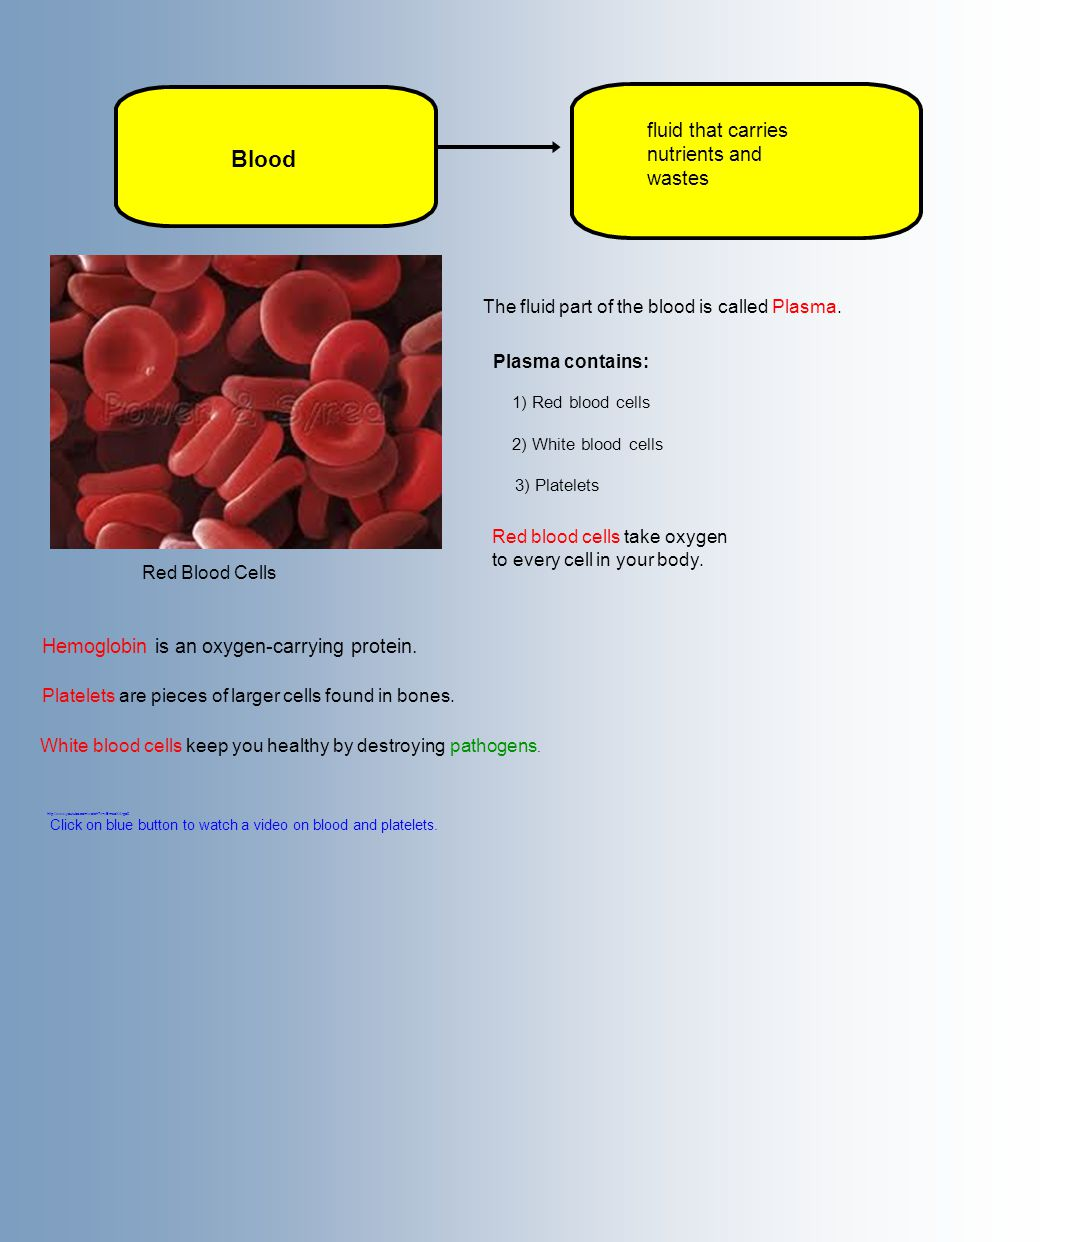 Blood fluid that carries nutrients and wastes